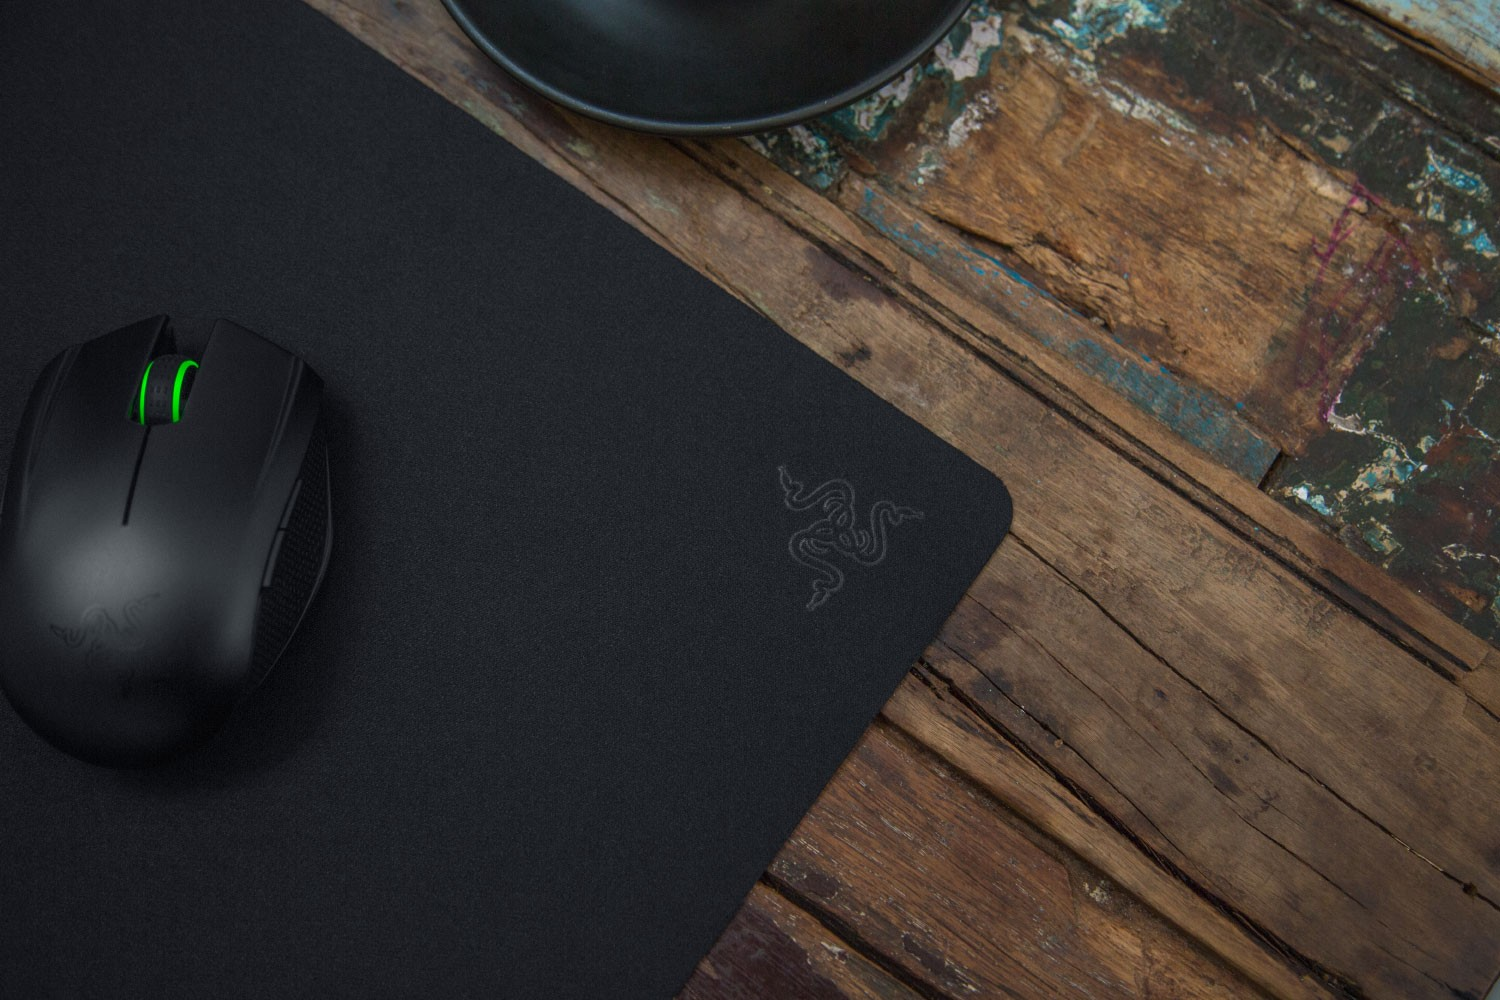 Razer Goliathus Mobile Stealth Ed. surface